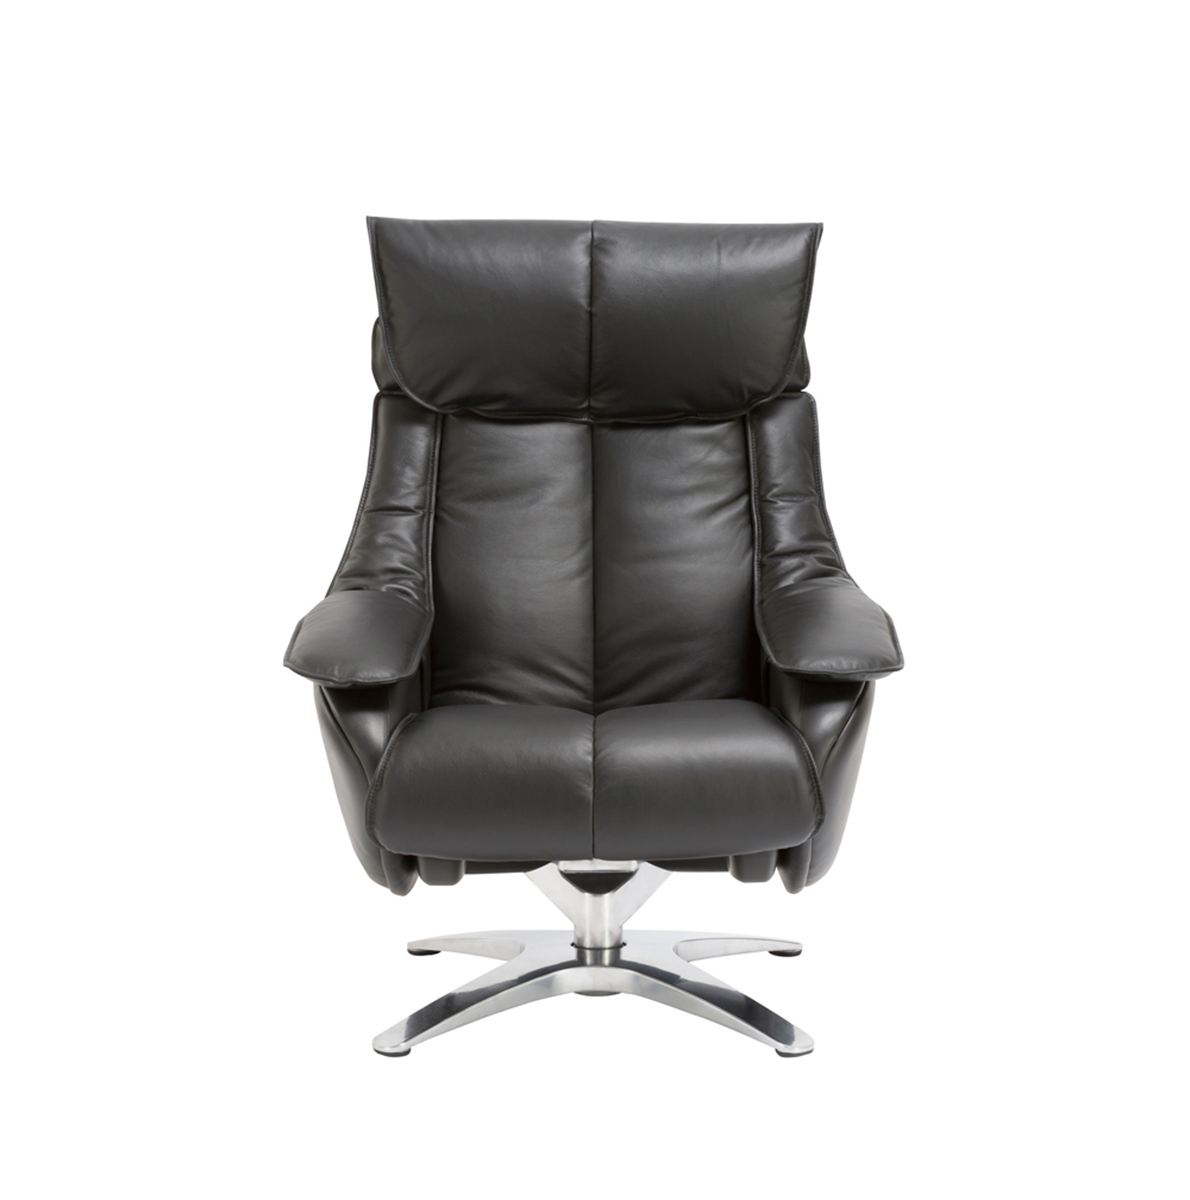 Barcalounger Eton Pedestal Recliner Chair with Adjustable Head Rest and Adjustable Ottoman - Capri Black/leather match